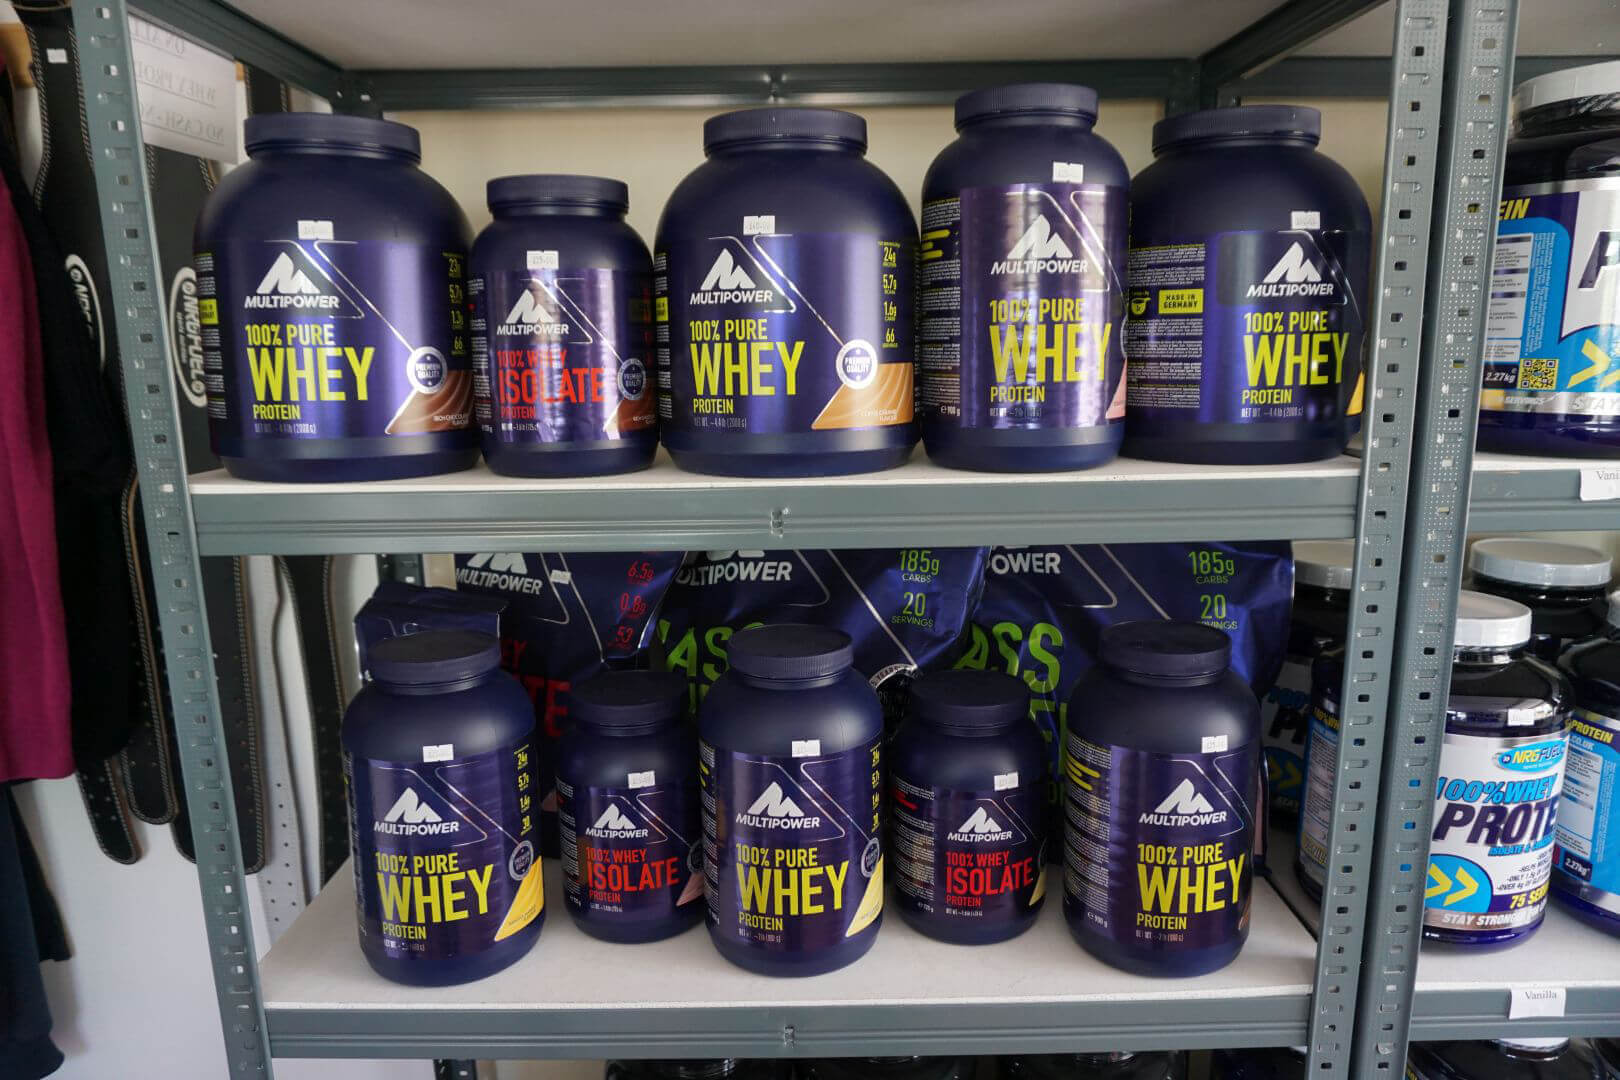 Fitta bodies gym whey protein multi power